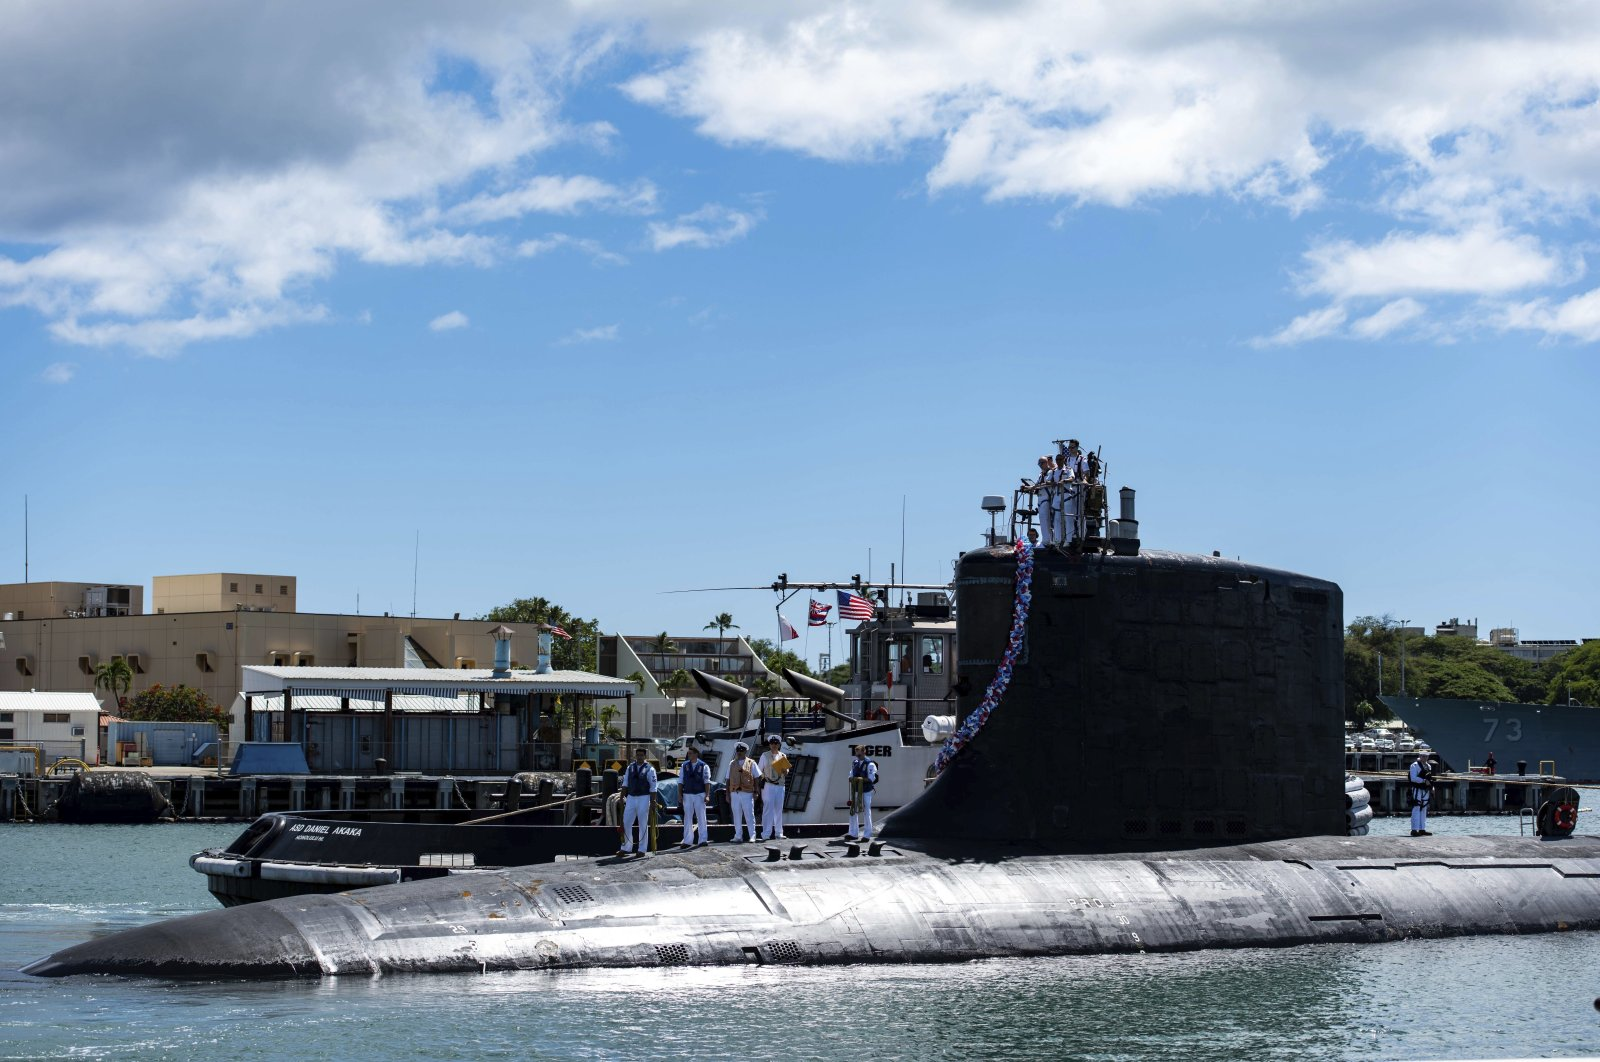 The Virginia-class fast-attack submarine USS Illinois (SSN 786) returns from a deployment in the 7th Fleet area of responsibility to Joint Base Pearl Harbor-Hickam, Hawaii, U.S., on Sept. 13, 2021. (AP Photo)